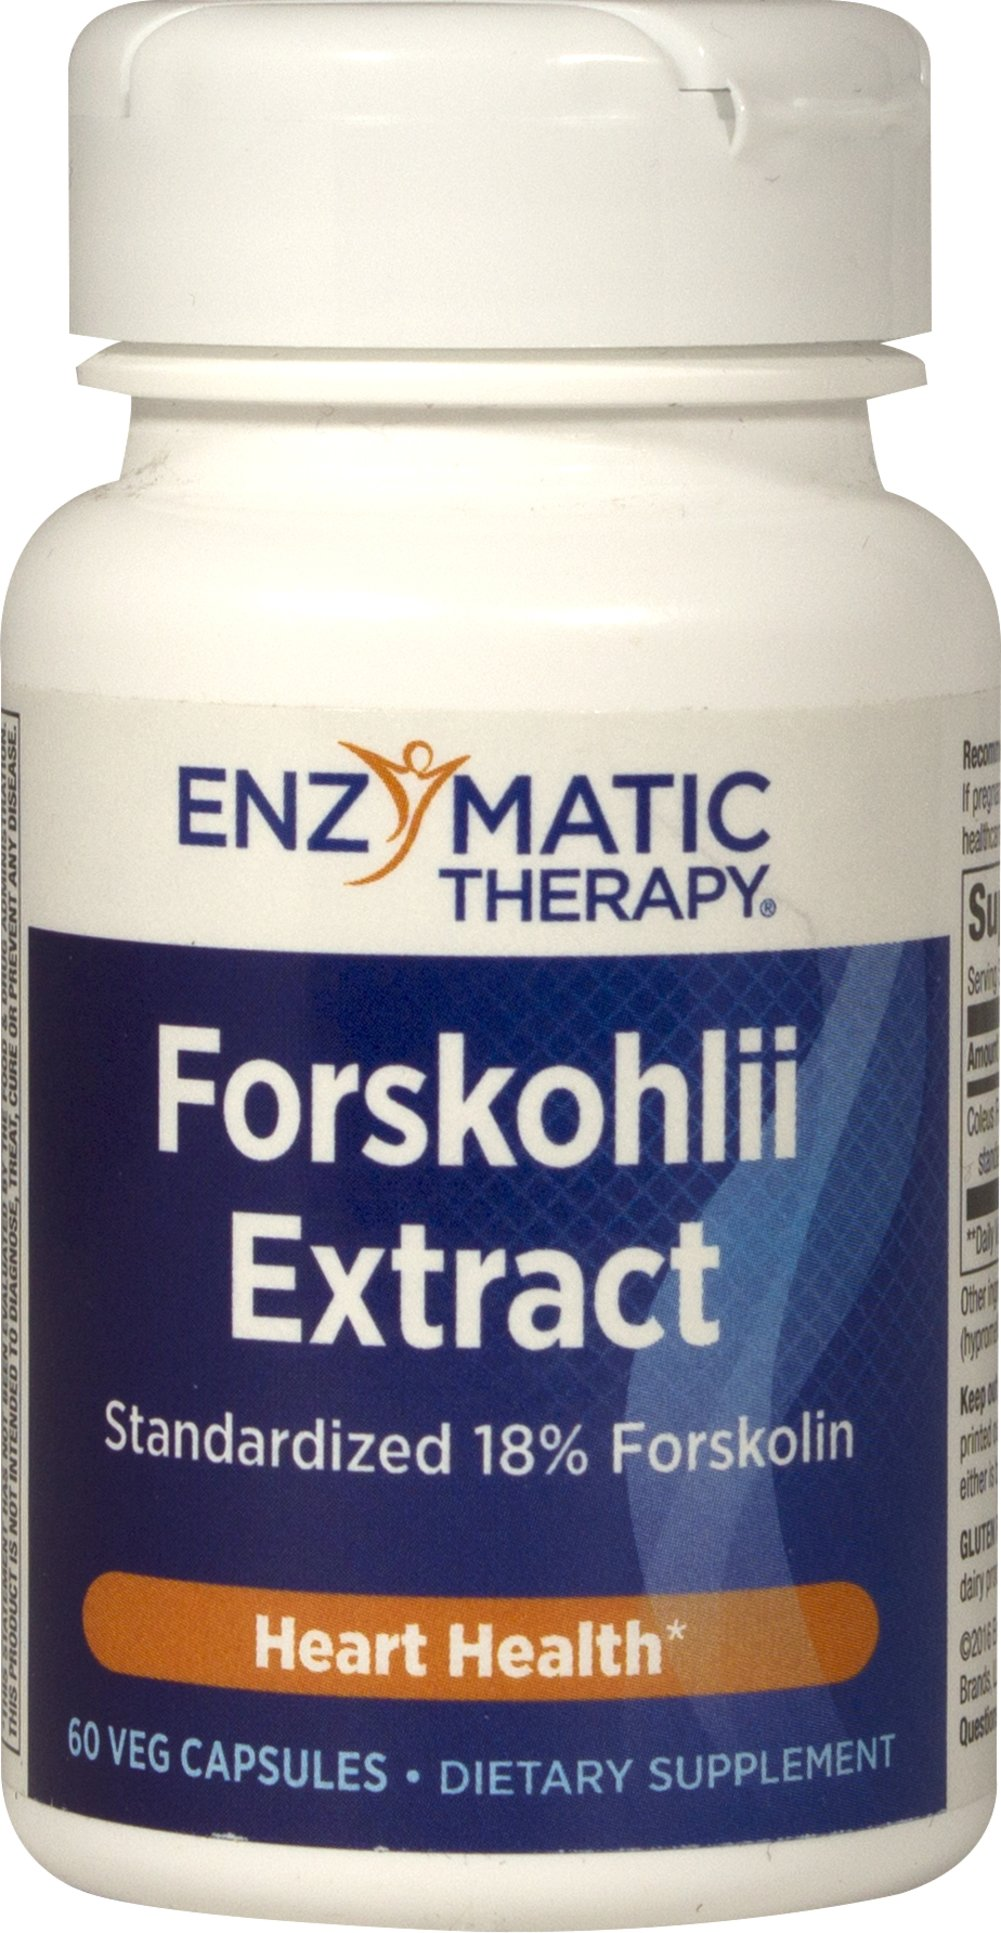 Coleus Forskholii Forskolin Standardized Extract 50 mg <p><strong>From the Manufacturer's label:</strong></p><p></p>Coleus Forskohlii Extract is produced from the root of Coleus forskohlii, an ancient Ayurvedic plant. Coleus is the source of a unique substance known as forskolin. Each batch of Enzymatic Therapy Coleus Forskohlii Extract is guaranteed to contain a minimum of 18% forskolin. Vegetarian.<p></p><p>Manufactured by Enzymatic The